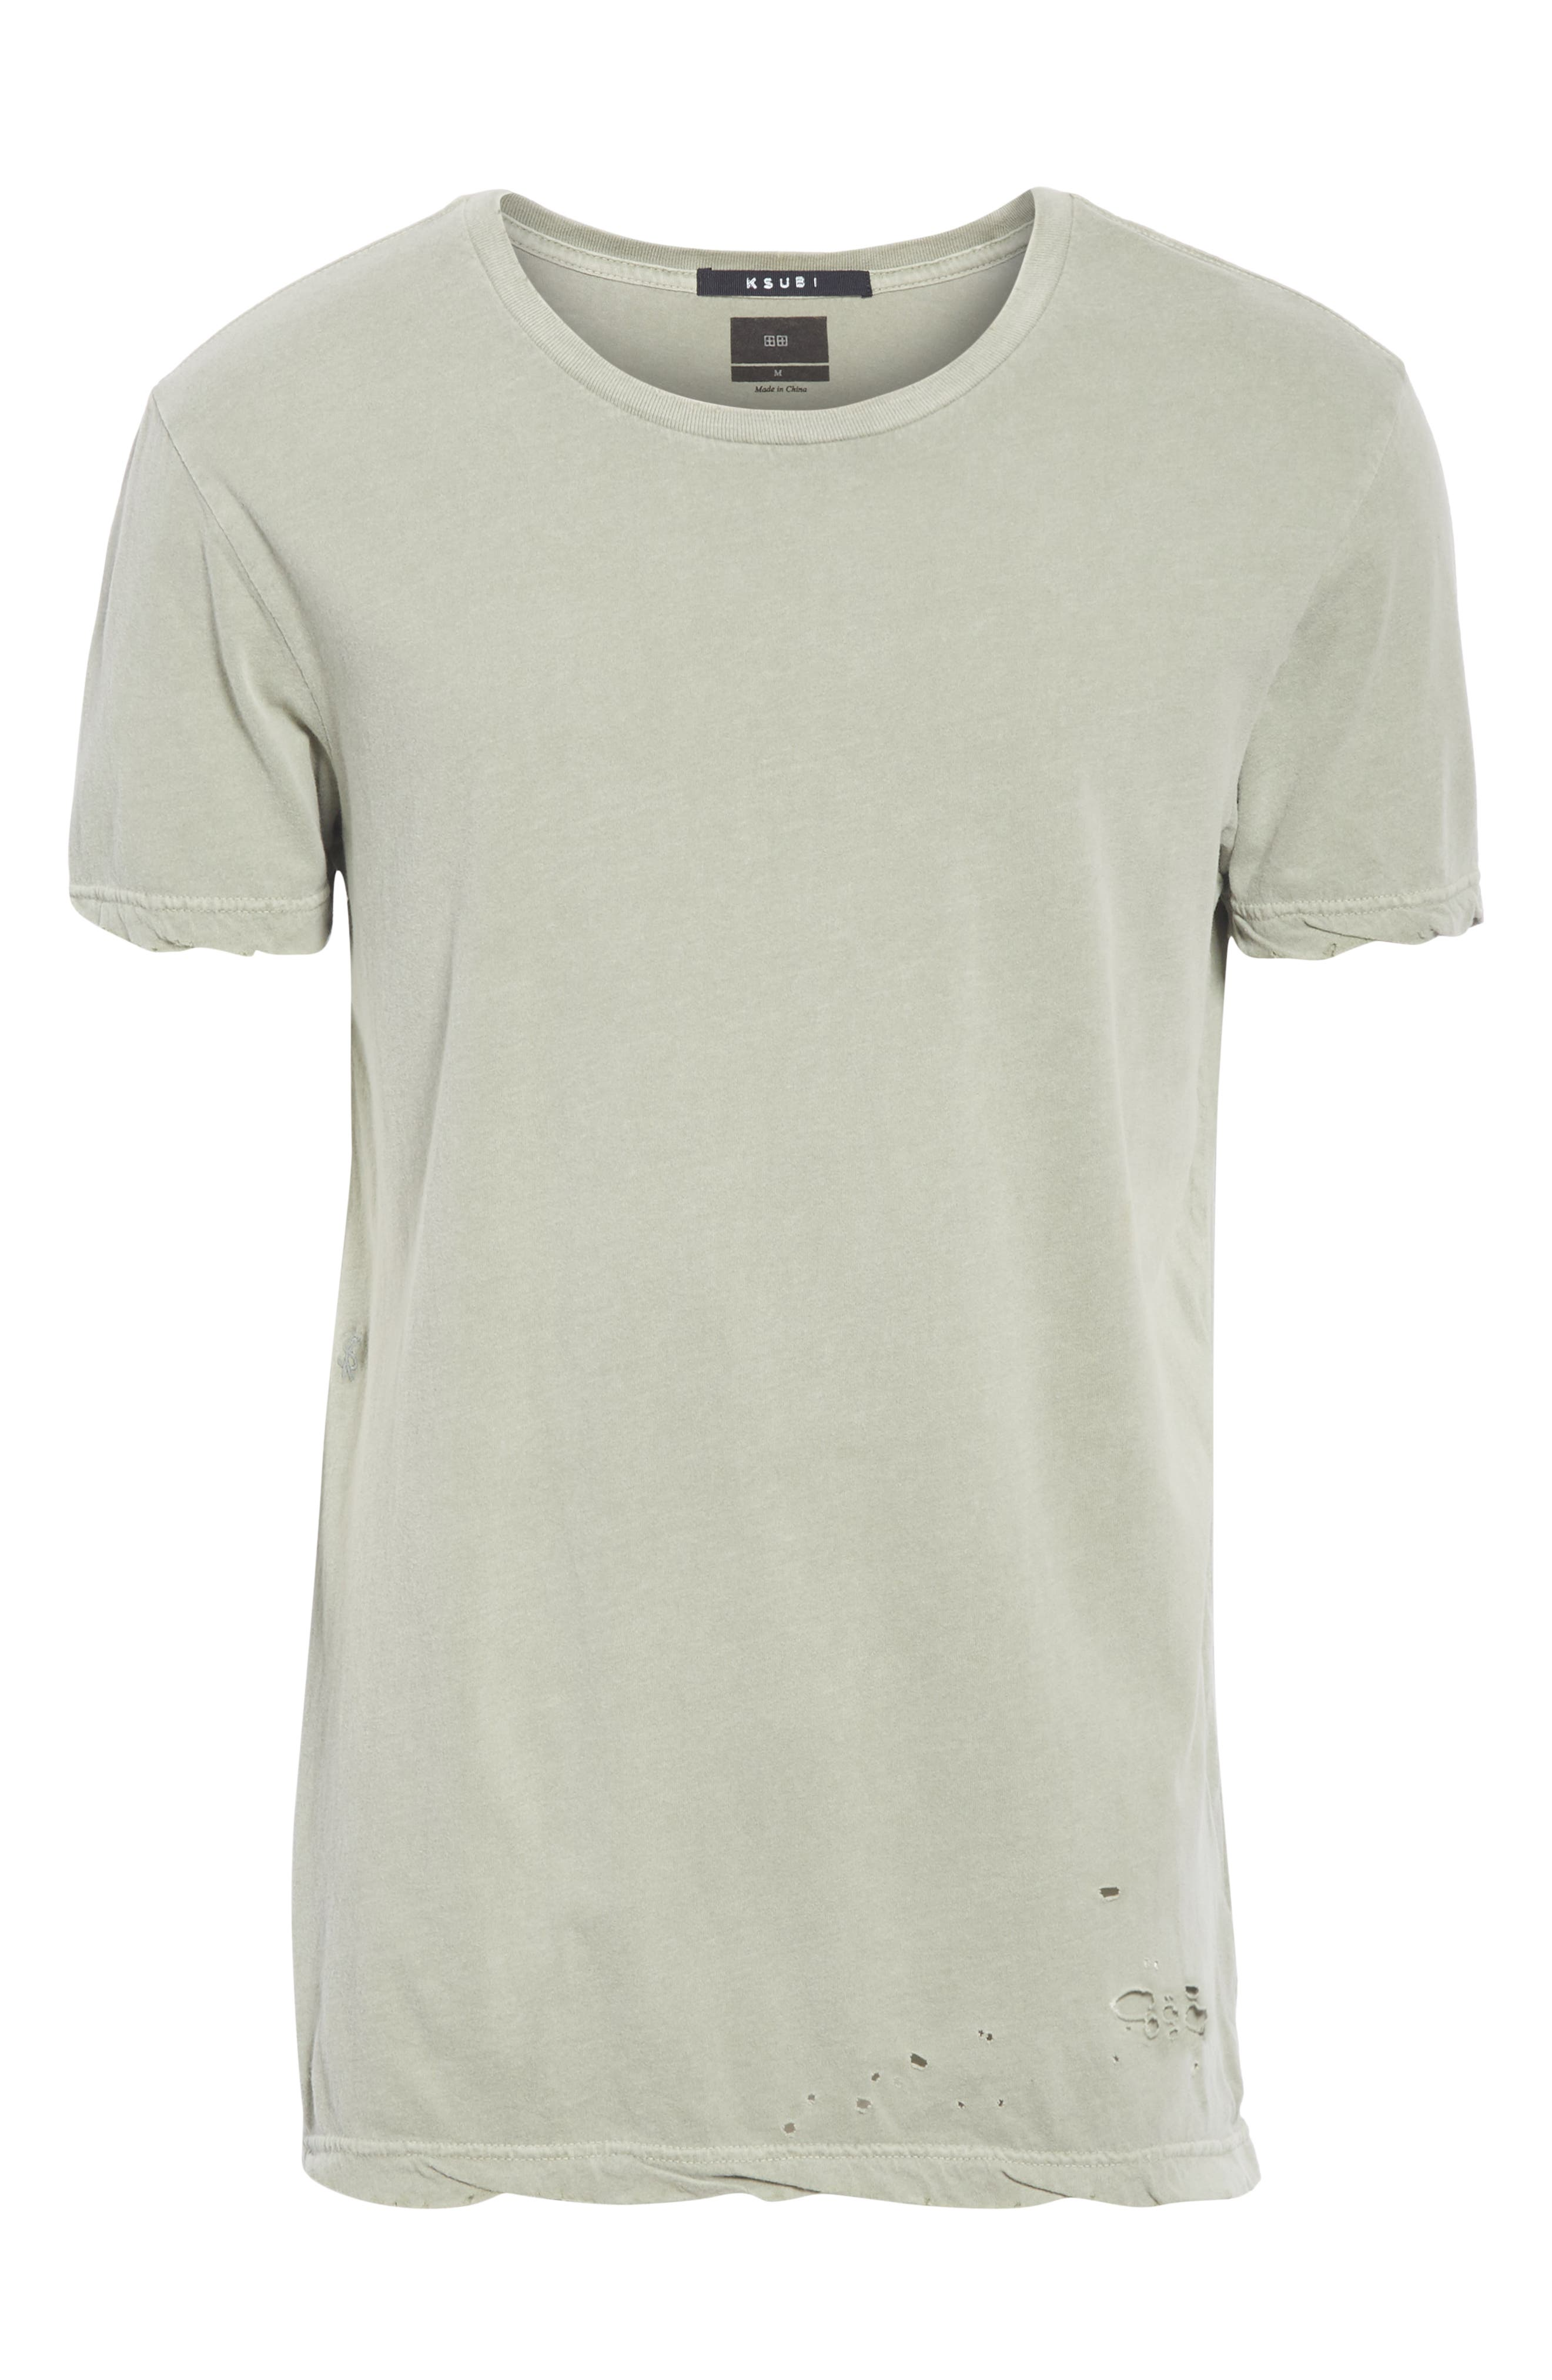 Sioux Distressed T-Shirt,                             Alternate thumbnail 6, color,                             300